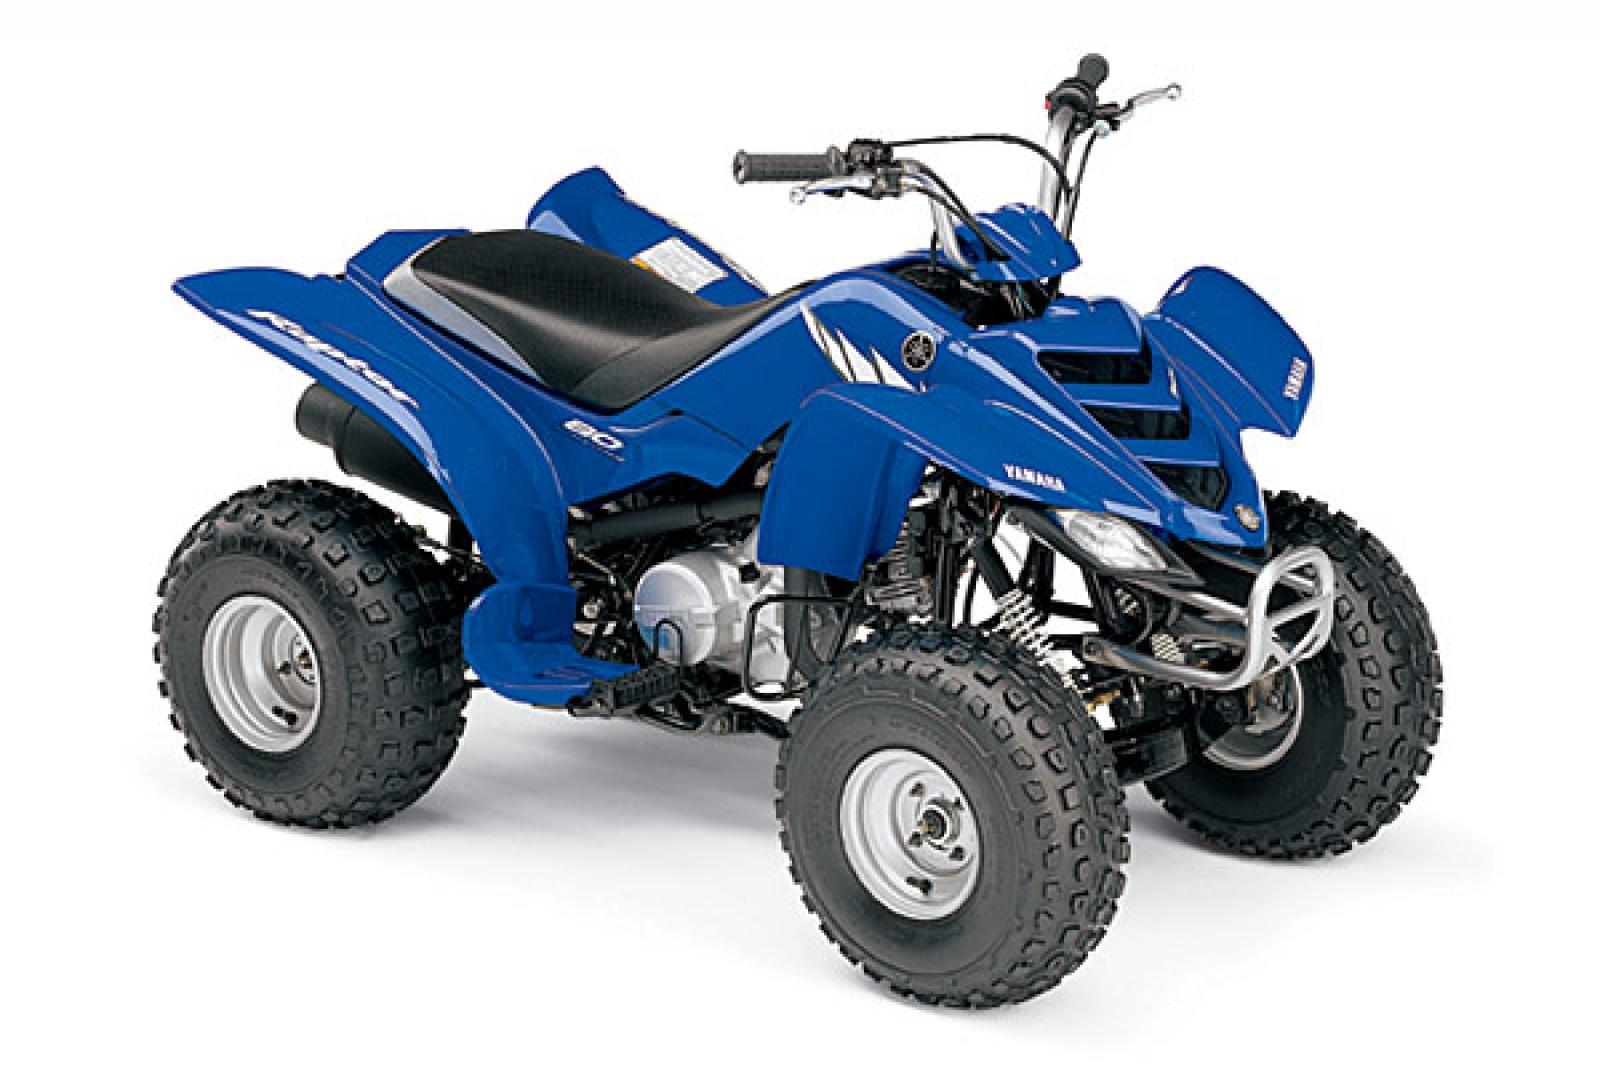 Yamaha Grizzly Dimensions